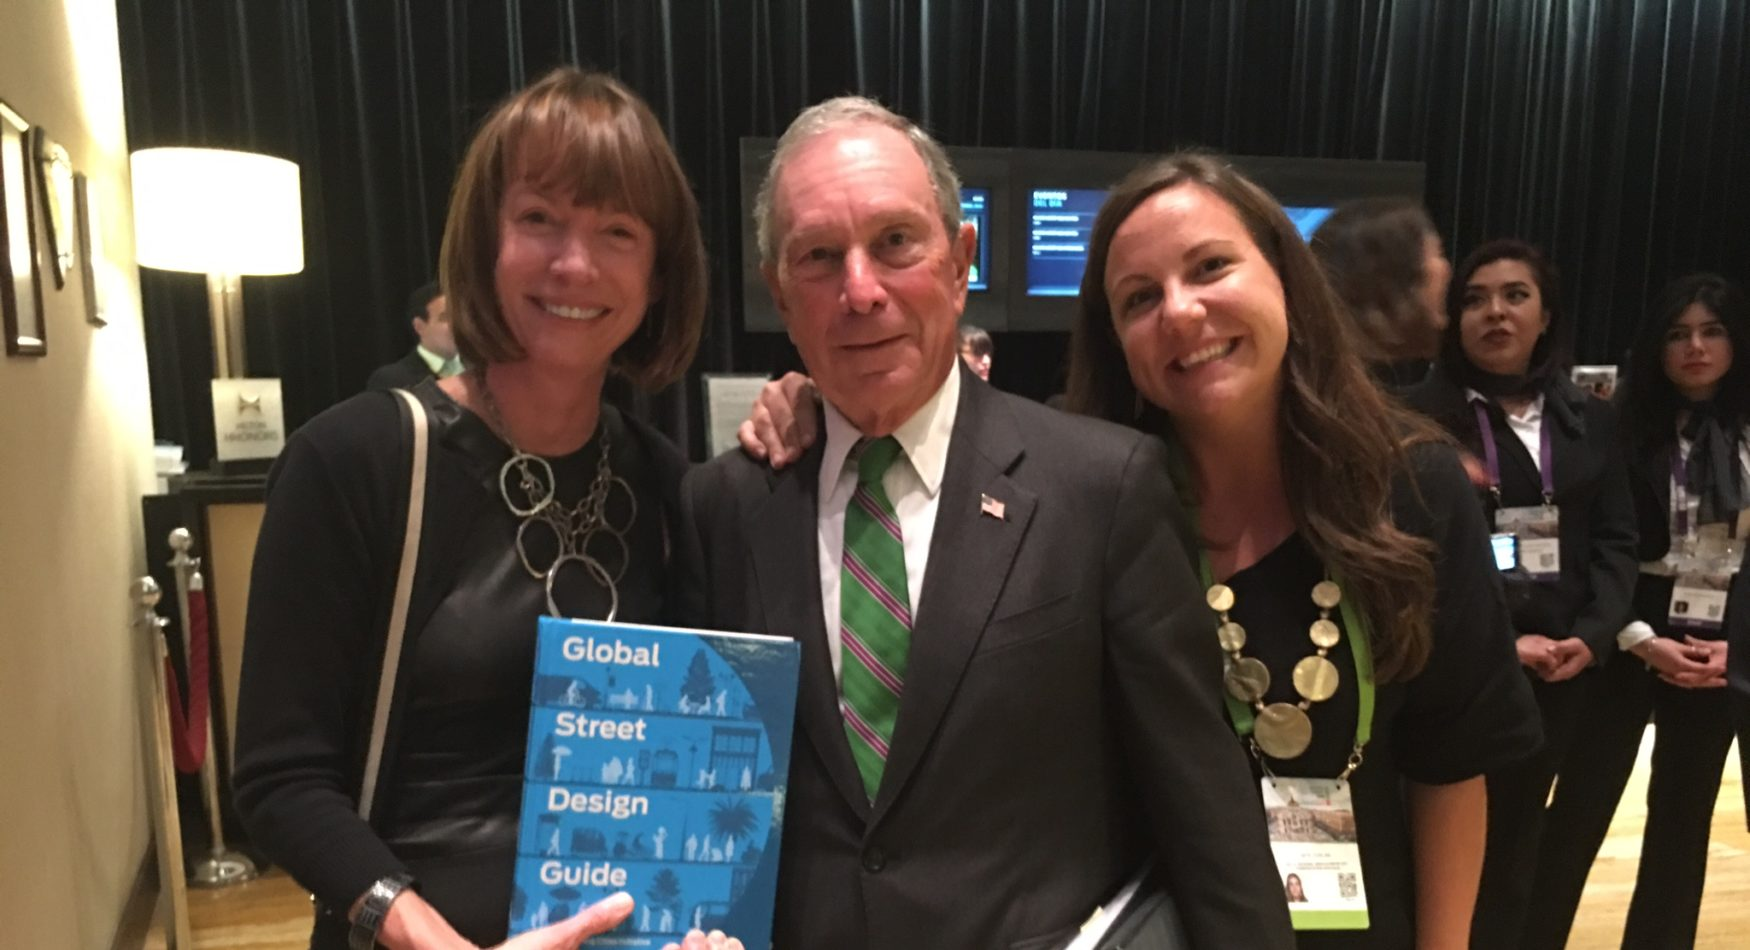 Picture of Janette Sadik-Khan, Mike Bloomberg, and Skye Duncan holding the Global Streets Design Guide